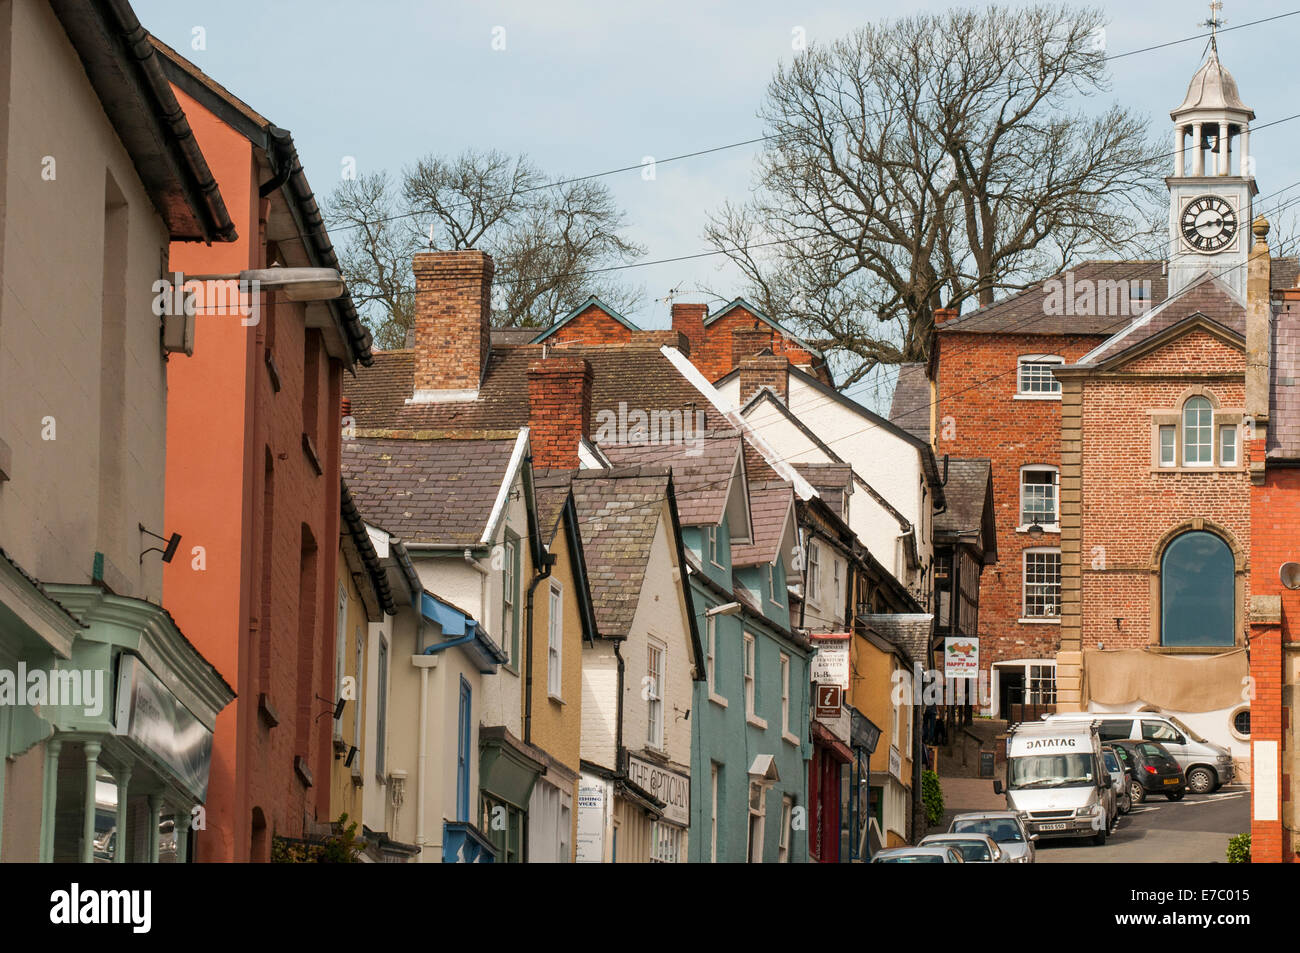 The main street of Bishop's Castle in the Welsh Marches district of Shropshire, England - Stock Image